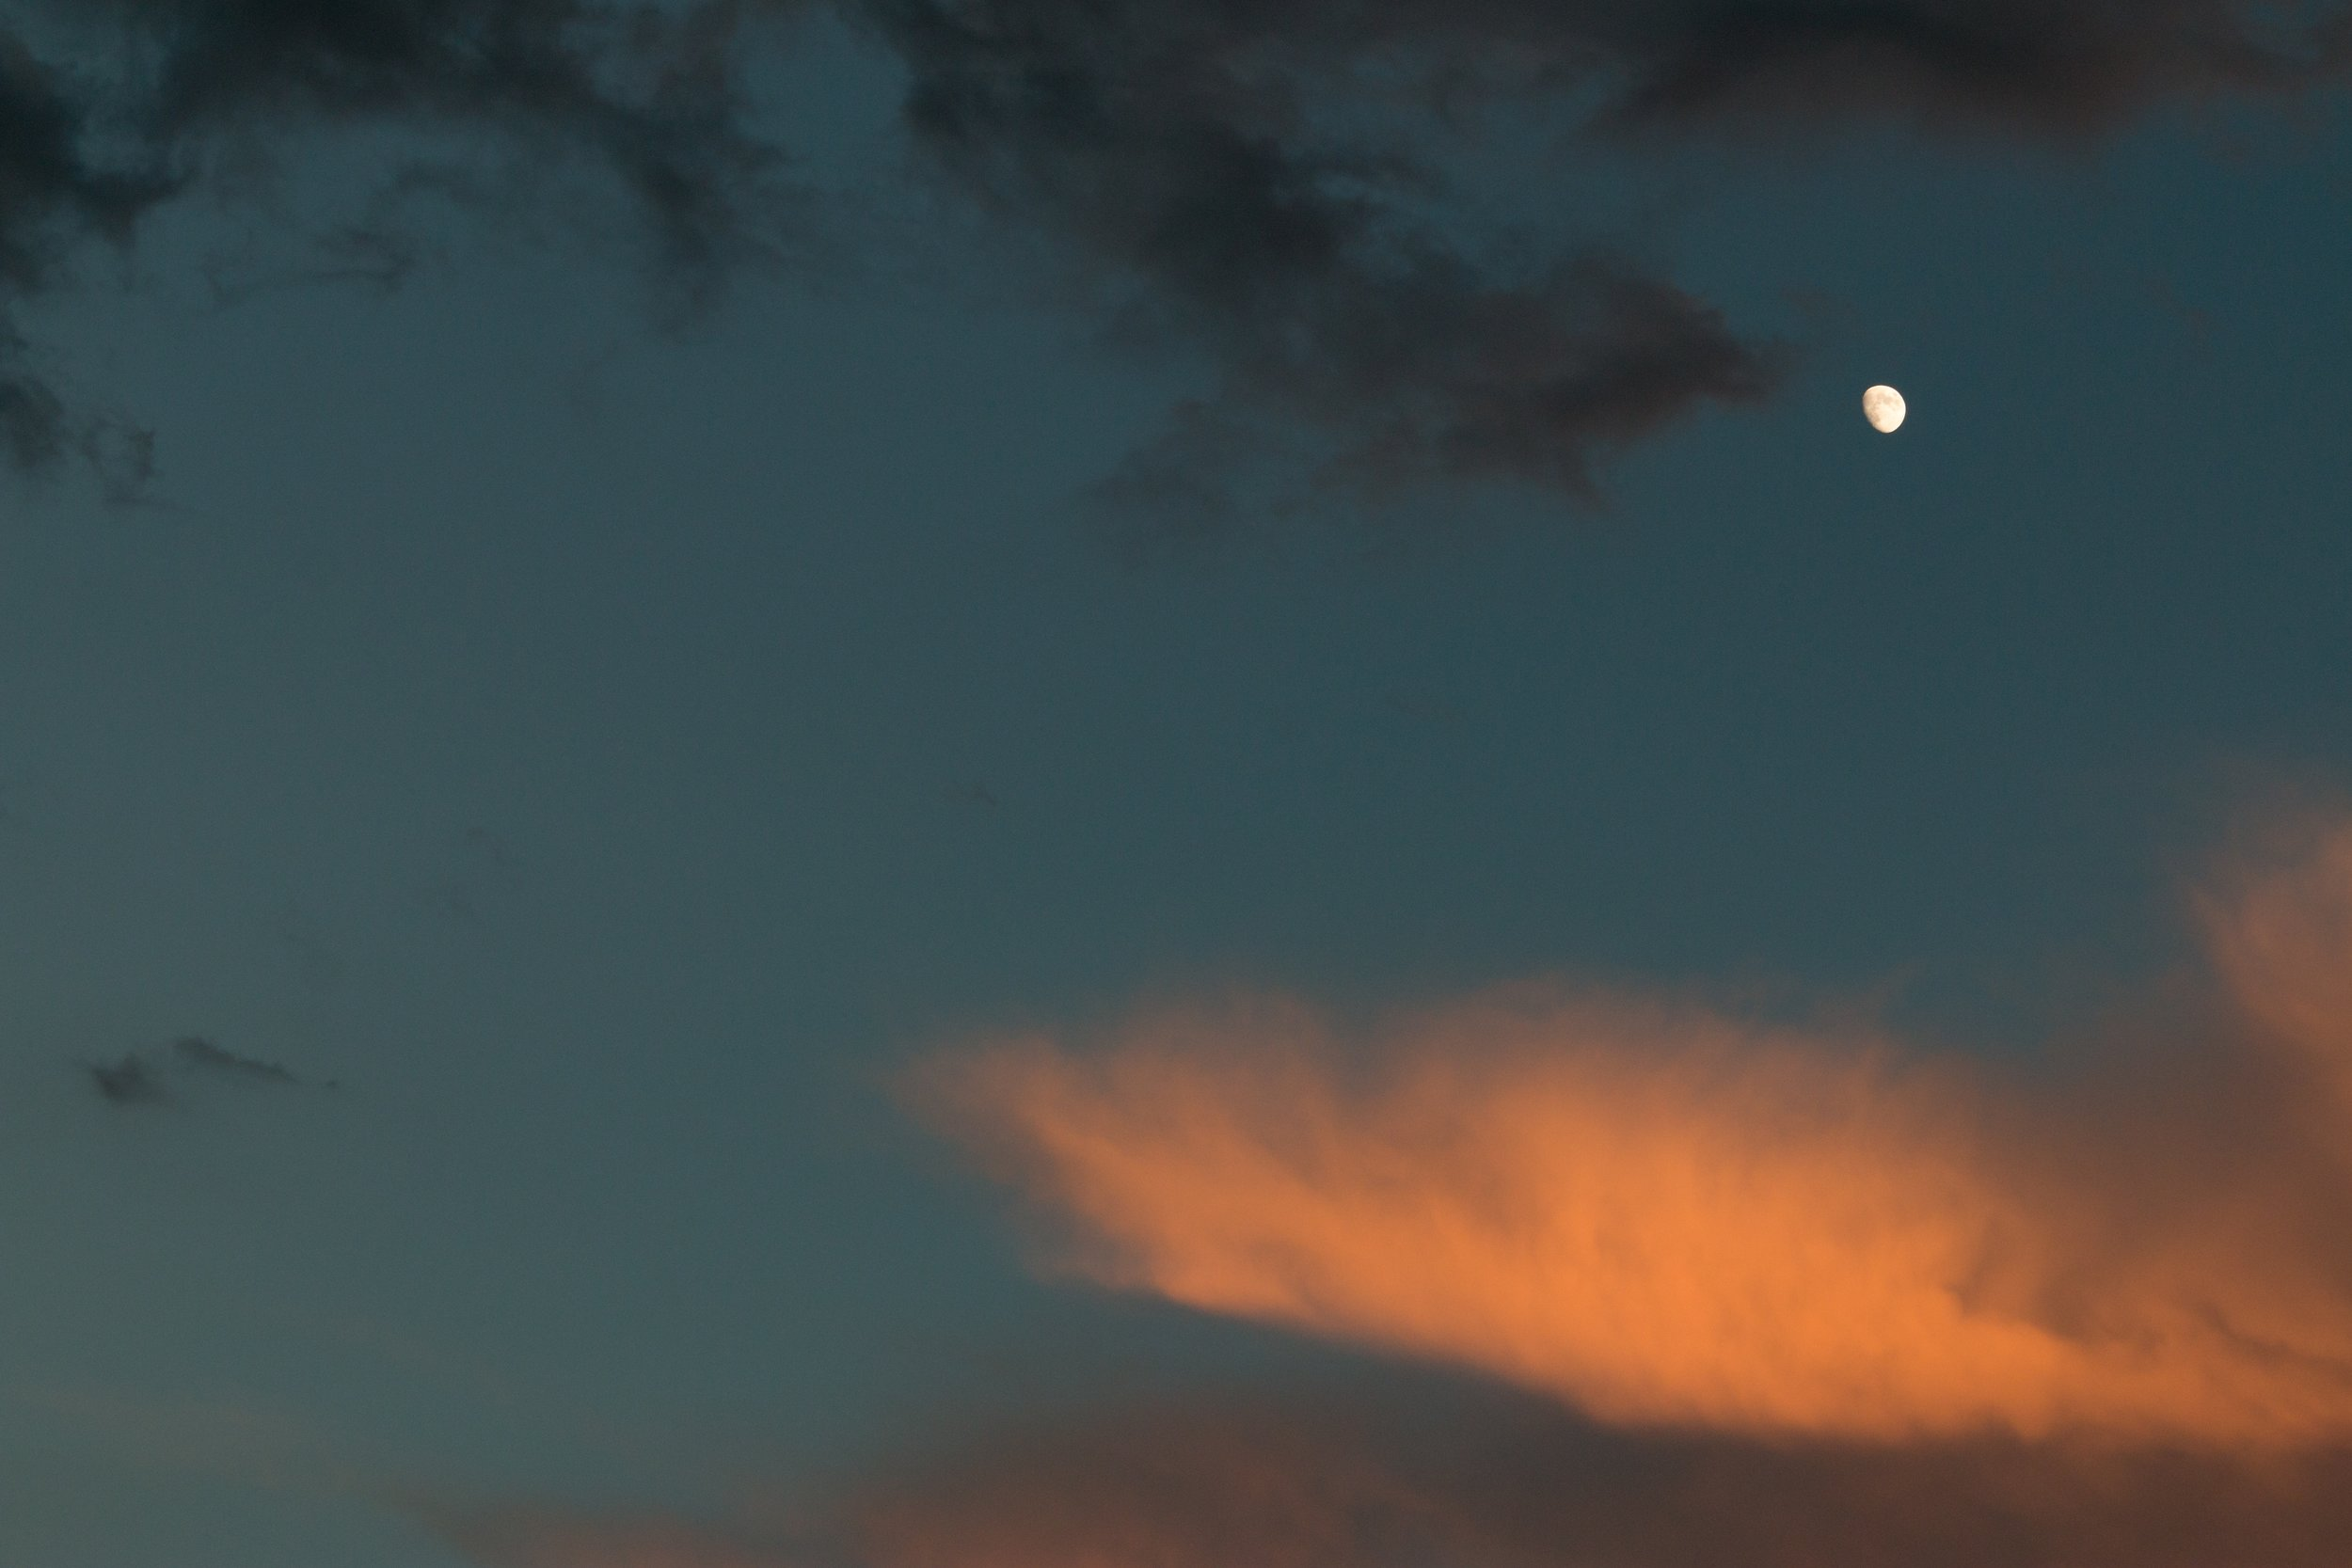 clouds-moon-nature-470940.jpg